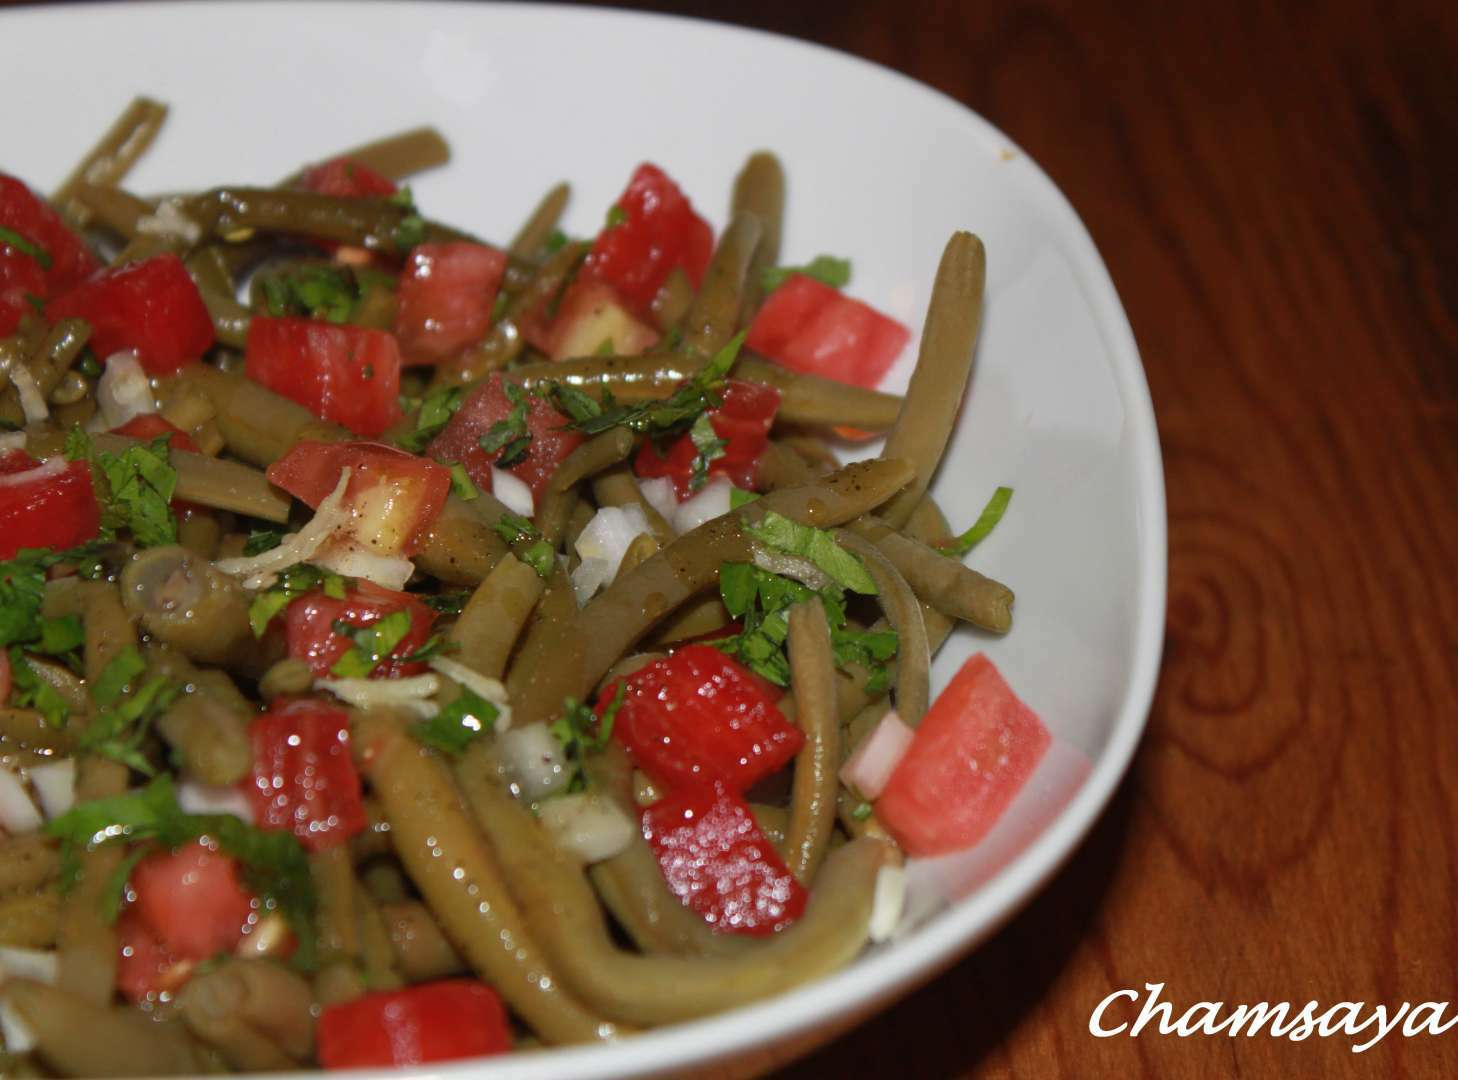 salade de haricots verts et tomates recette ptitchef. Black Bedroom Furniture Sets. Home Design Ideas